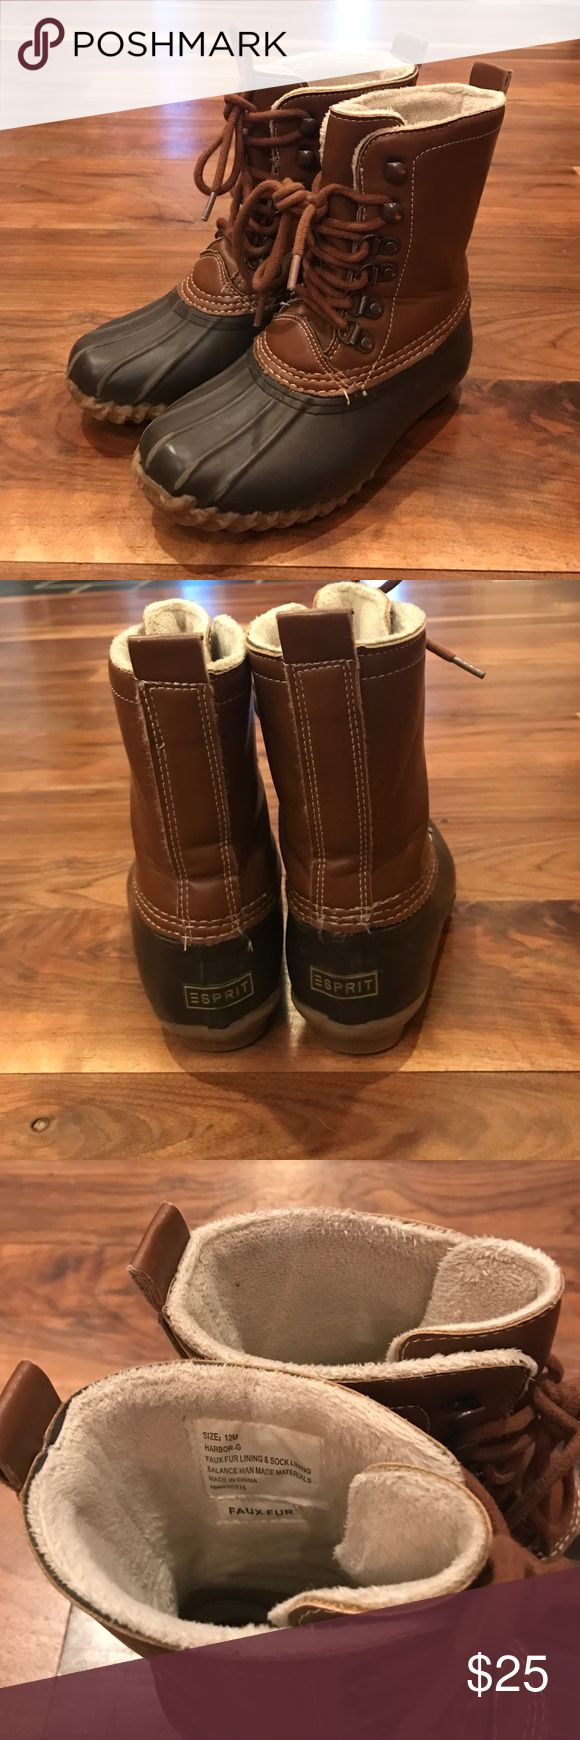 Kids  duck boots Kids size 12 rain boots, fleece lined Esprit Shoes Boots